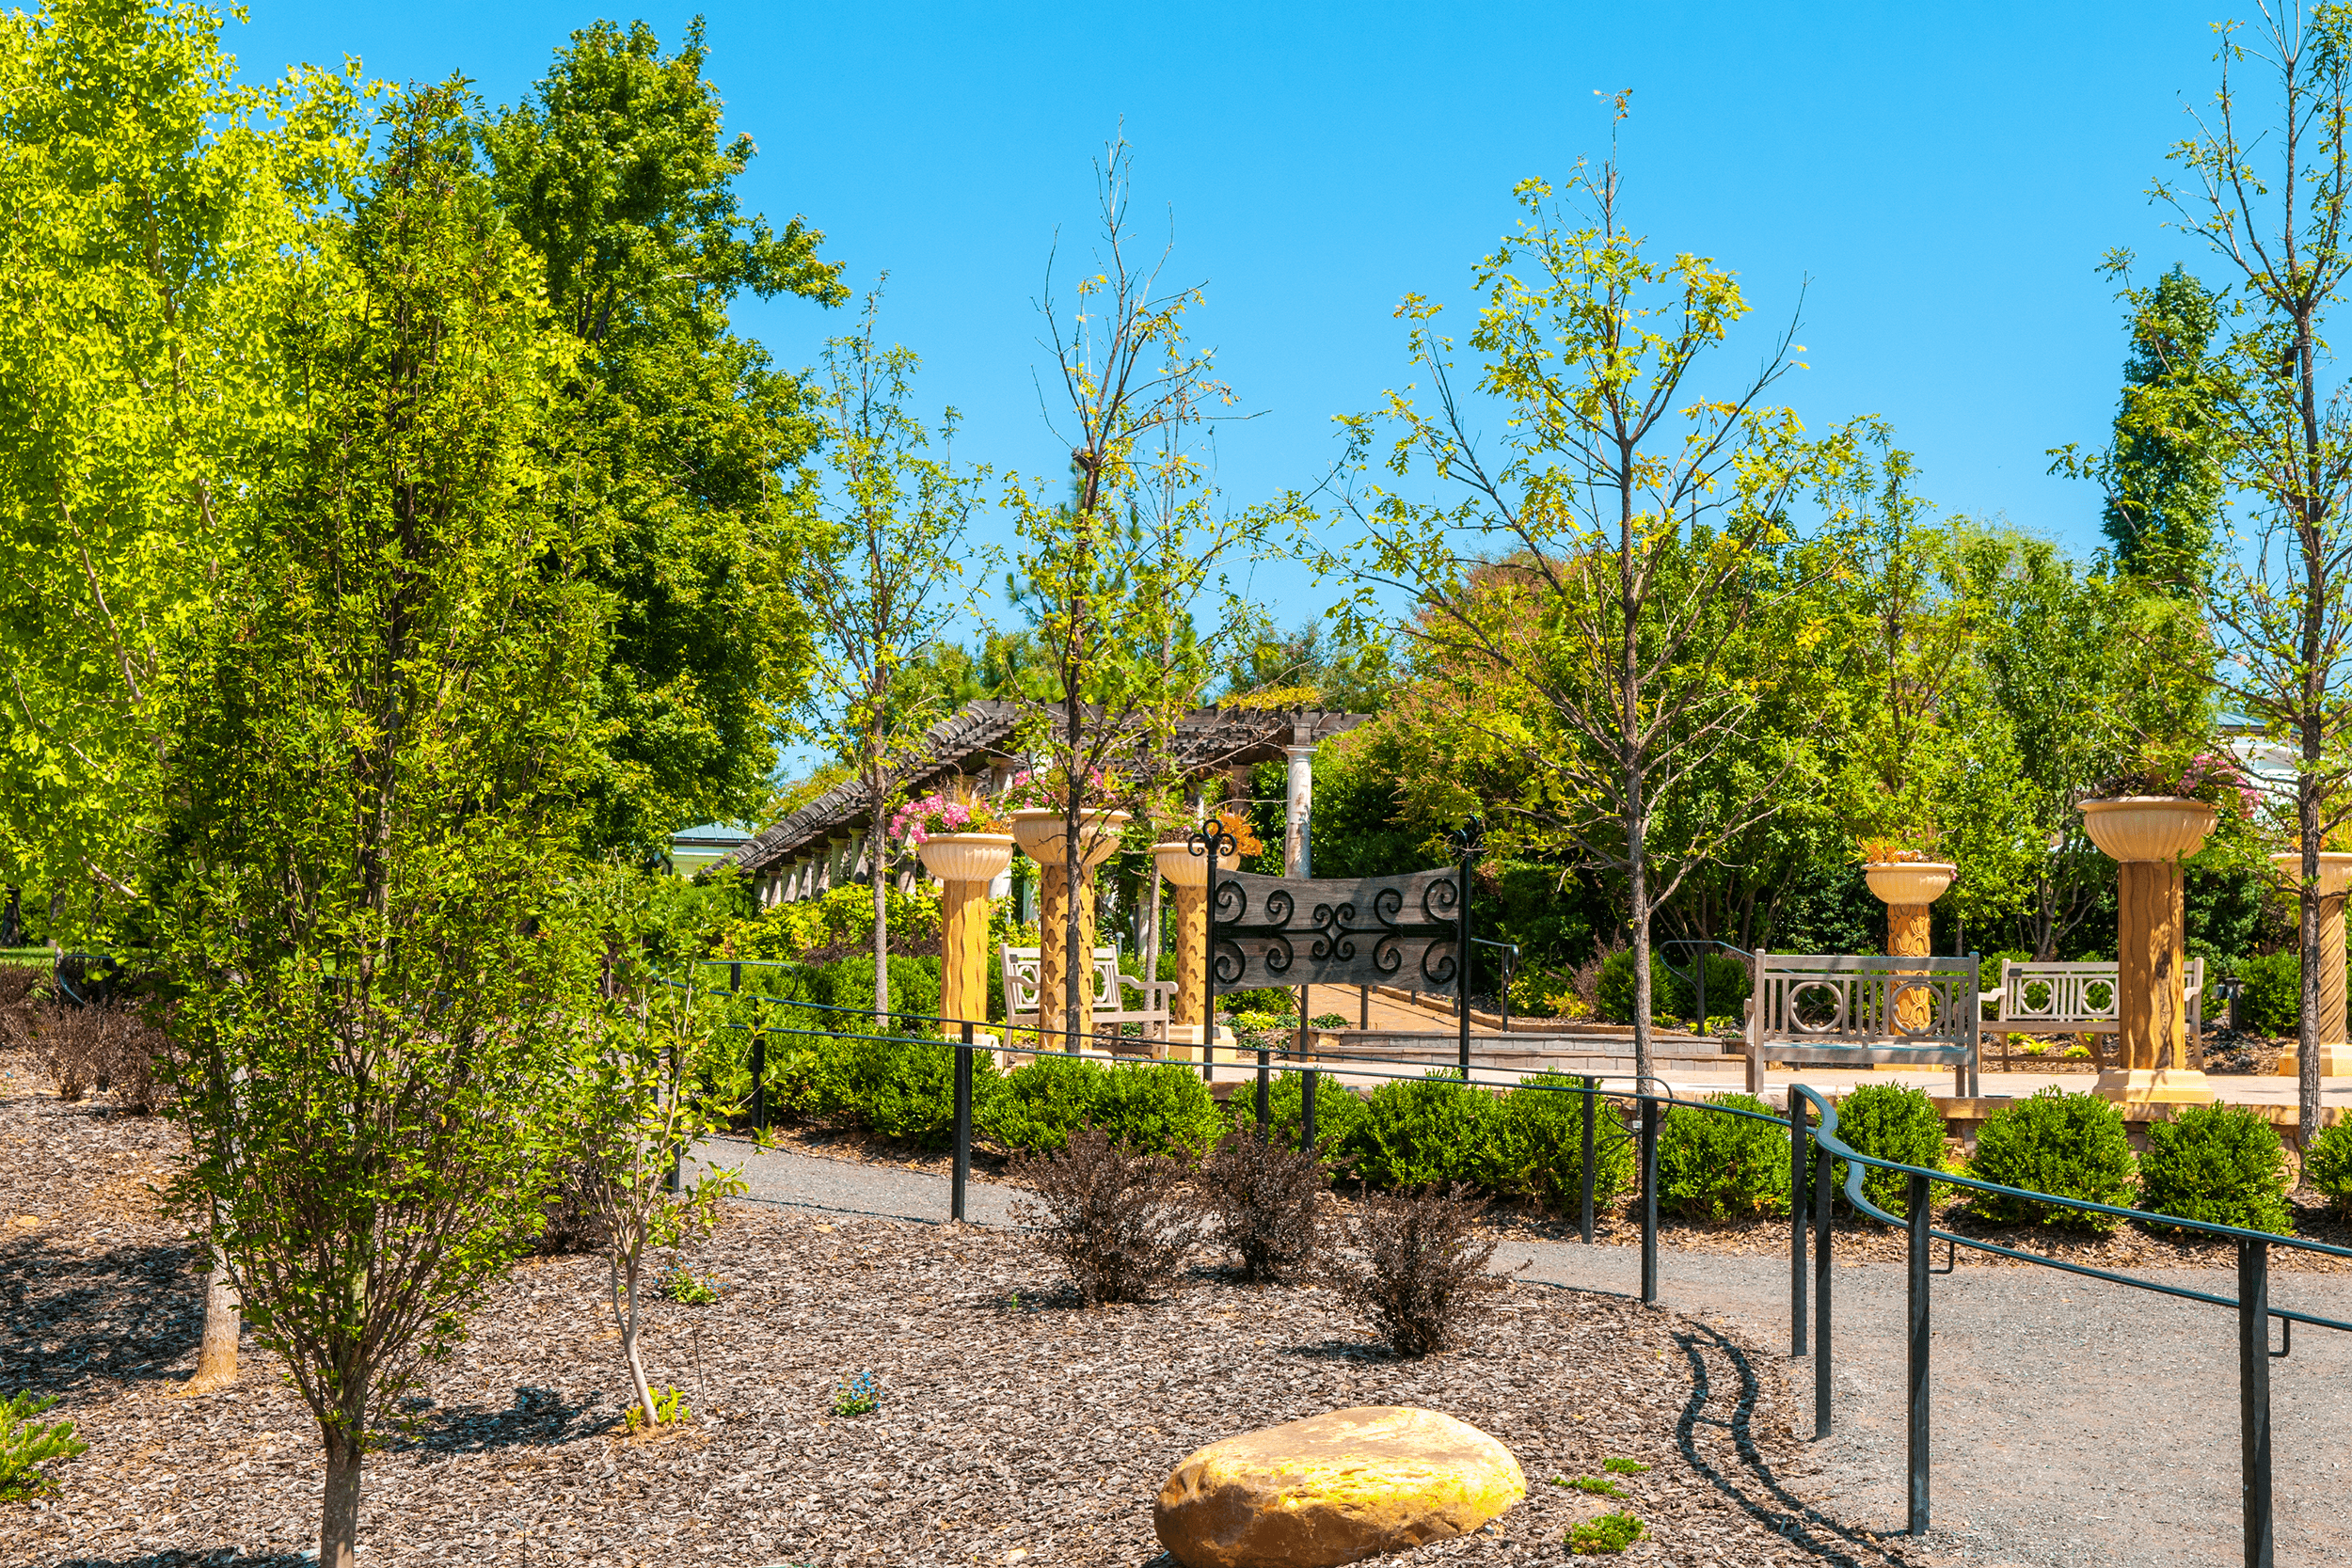 The Garden first opened in 1999 with only the  Visitor Pavilion , the  Formal Display Garden  and the  Perennial Gardens  completed. However, this is precisely what Daniel Stowe had in mind: The Botanical Garden was to grow in phases over 50 years. The  White Garden  was added in 2003.